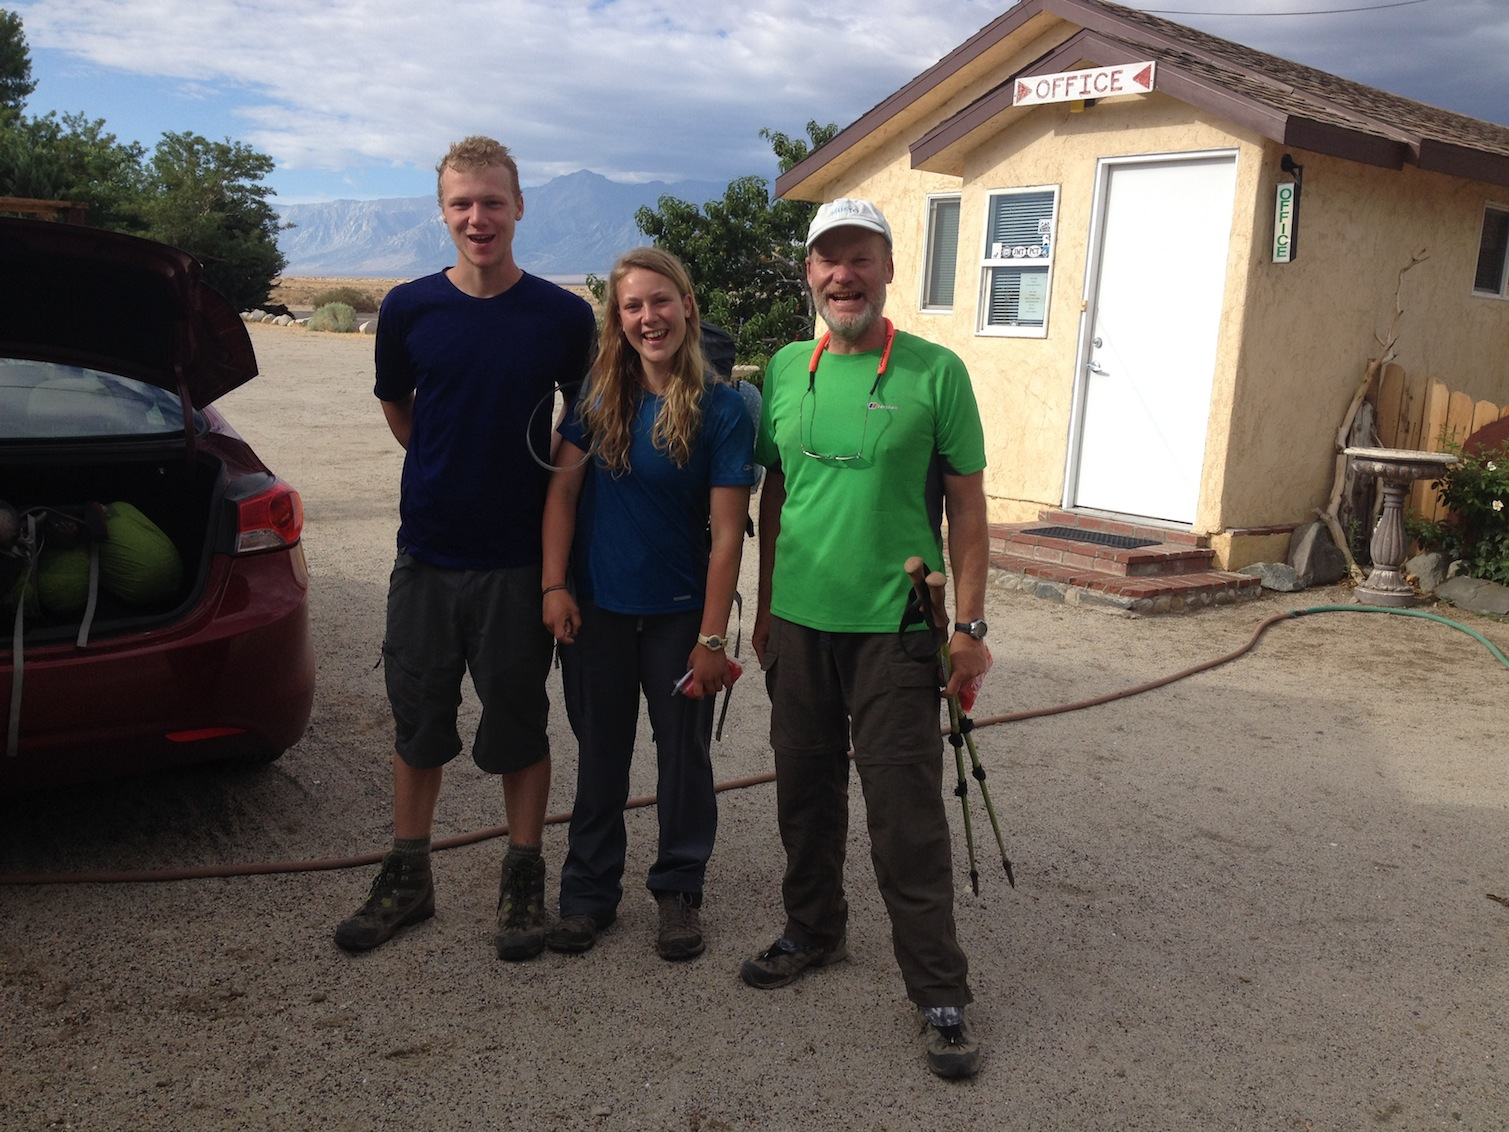 British JMT hikers Richard and Elena and father Gordon at the Base Camp before heading back up to the trail